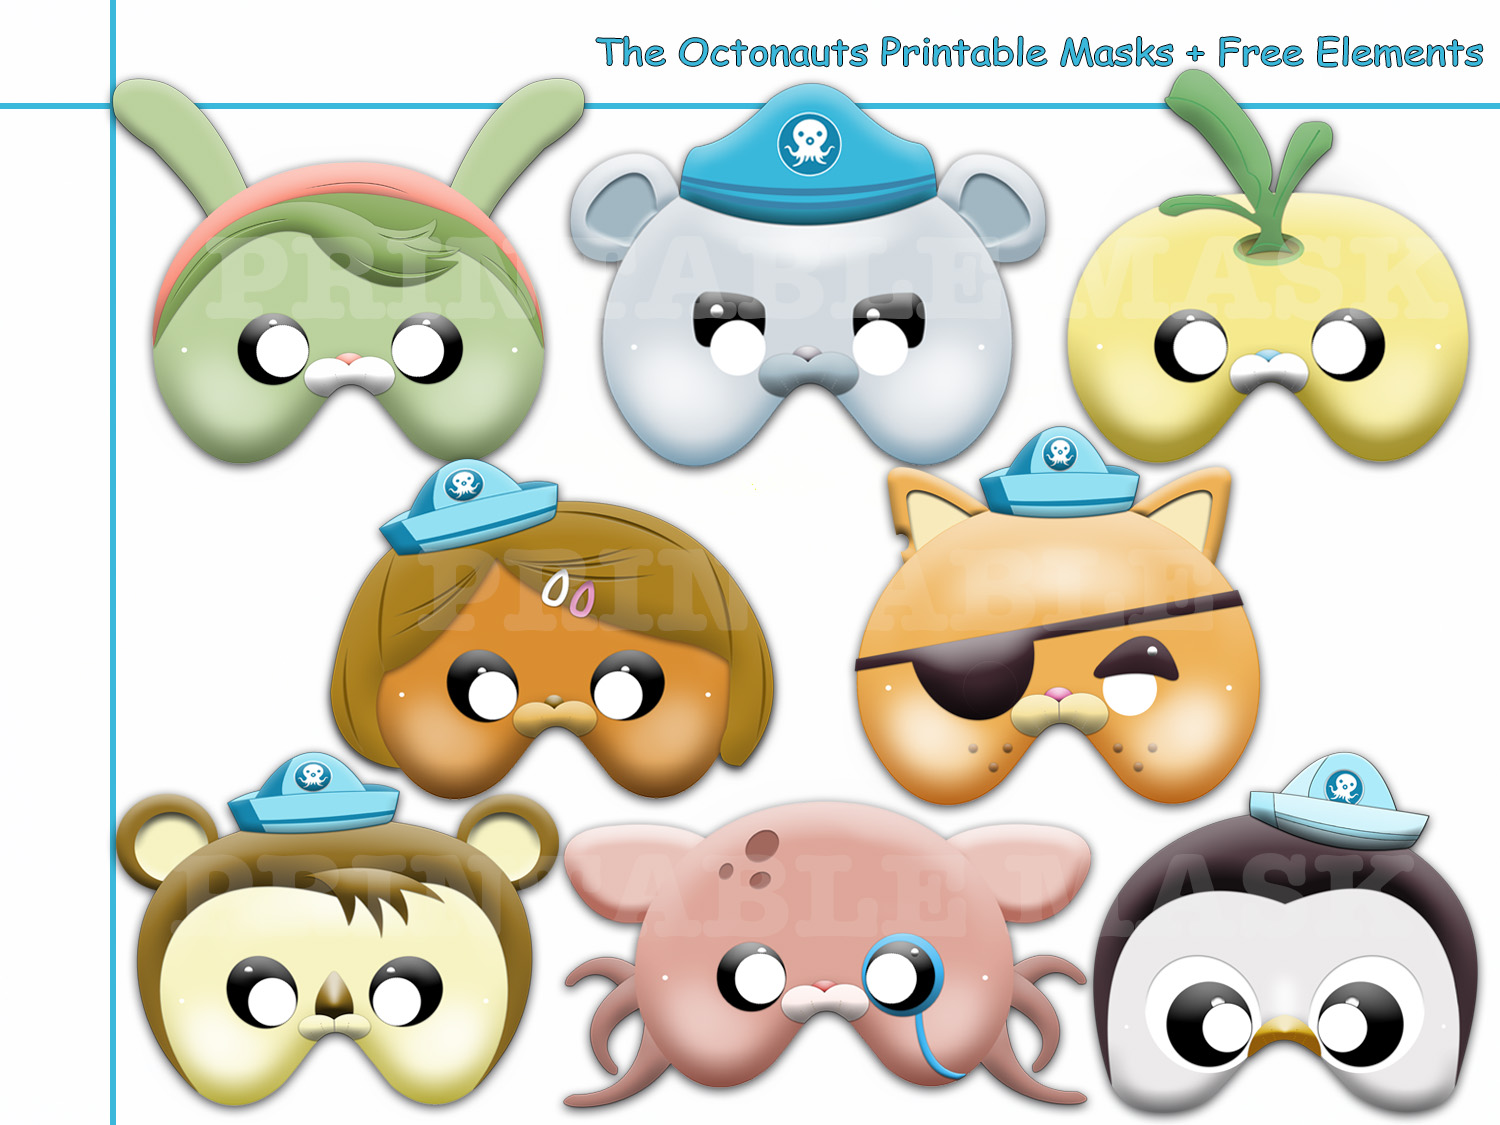 Unique The Octonauts Printable Masks